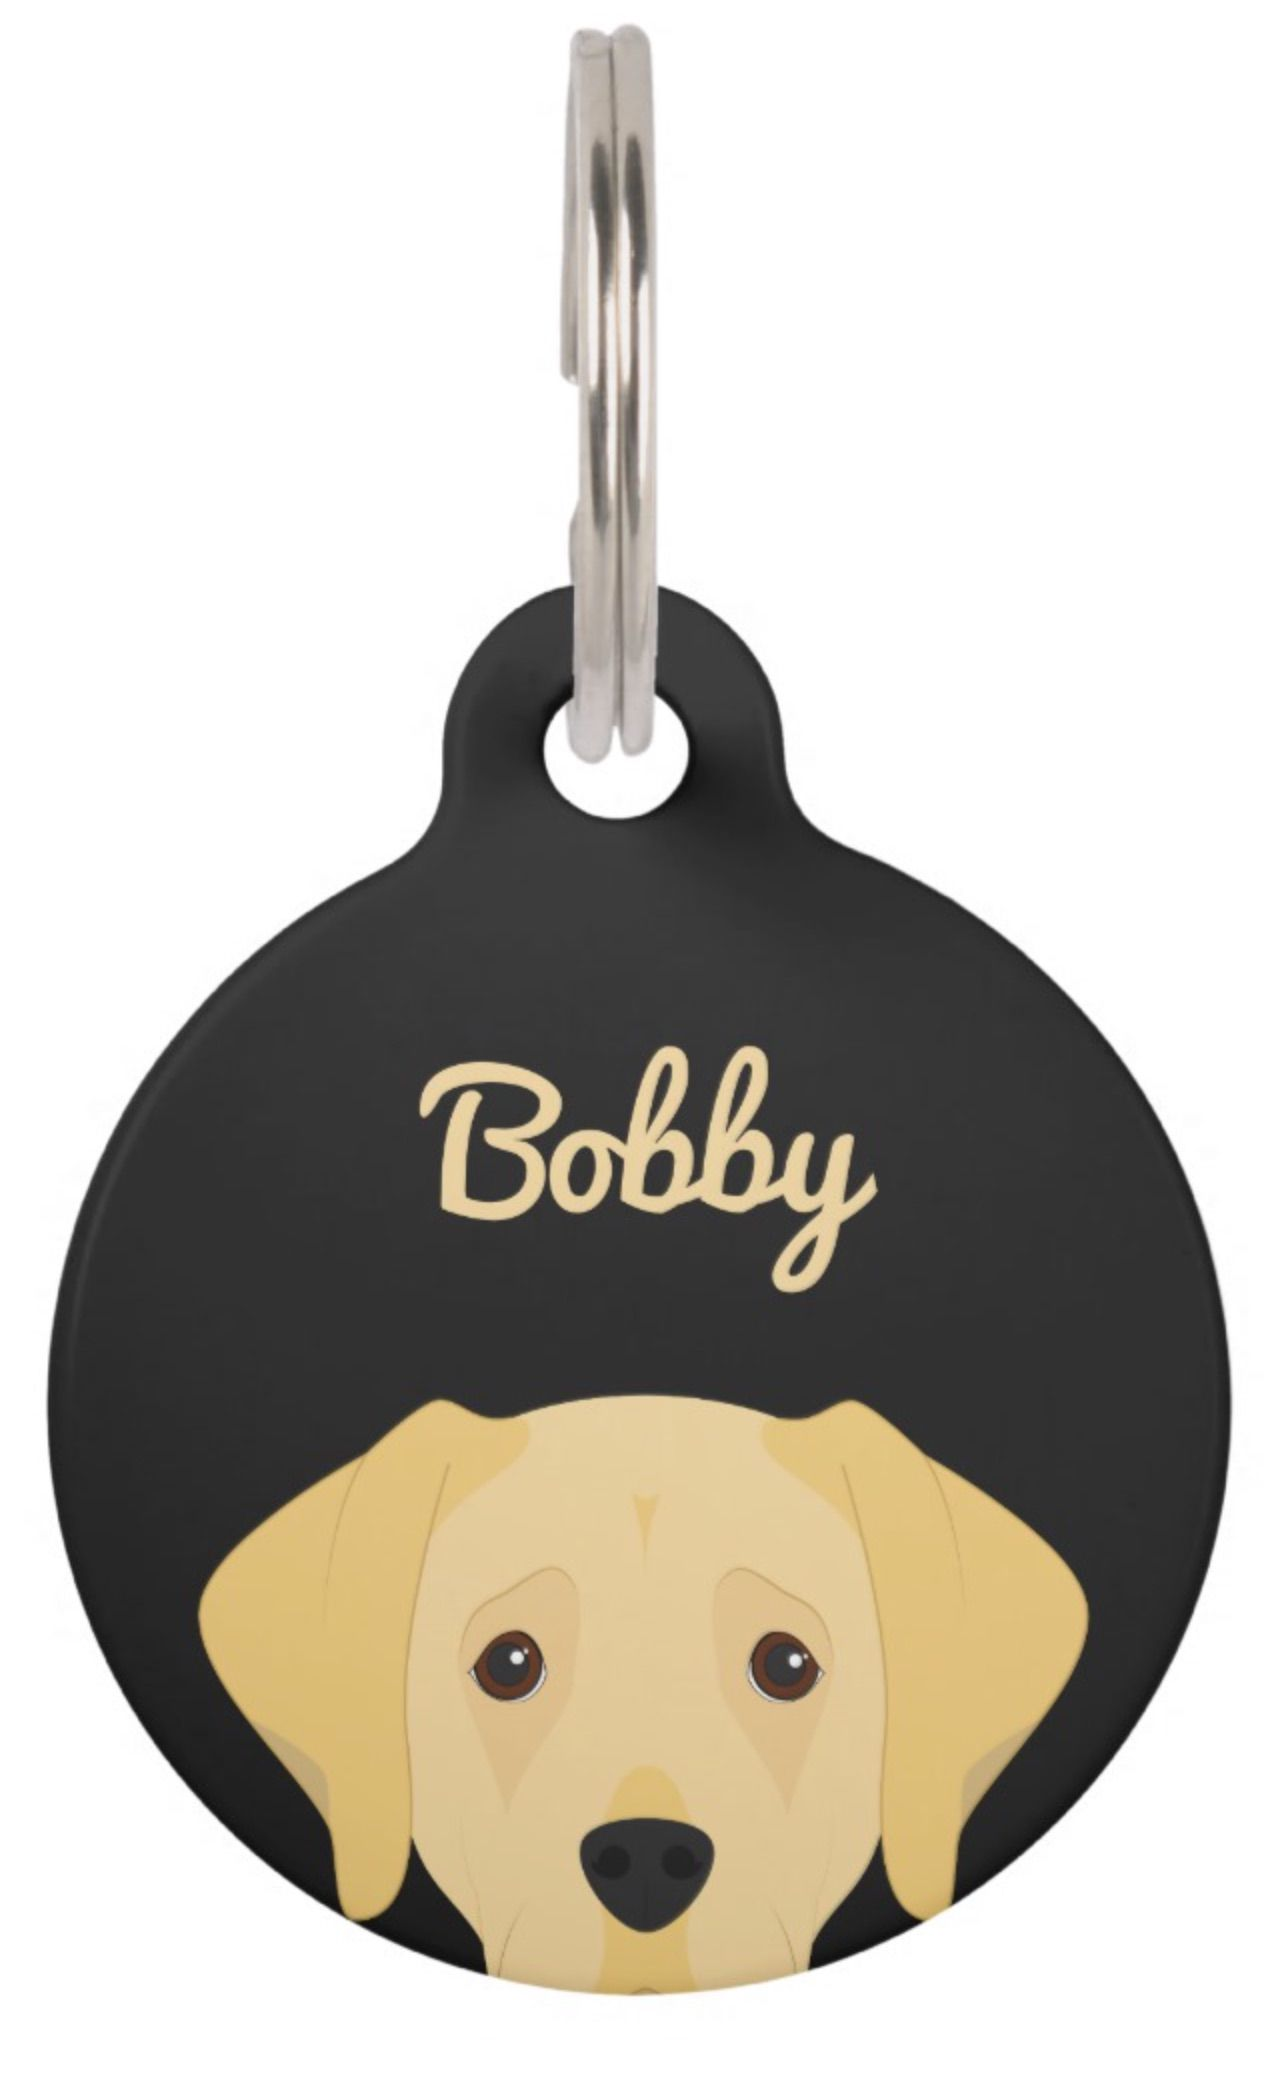 Labrador Retriever Dog Portrait Pet Name Tag Labrador Retriever by Junkys Dog Store - Funny and cute portrait illustration of a blonde Labrador Retriever